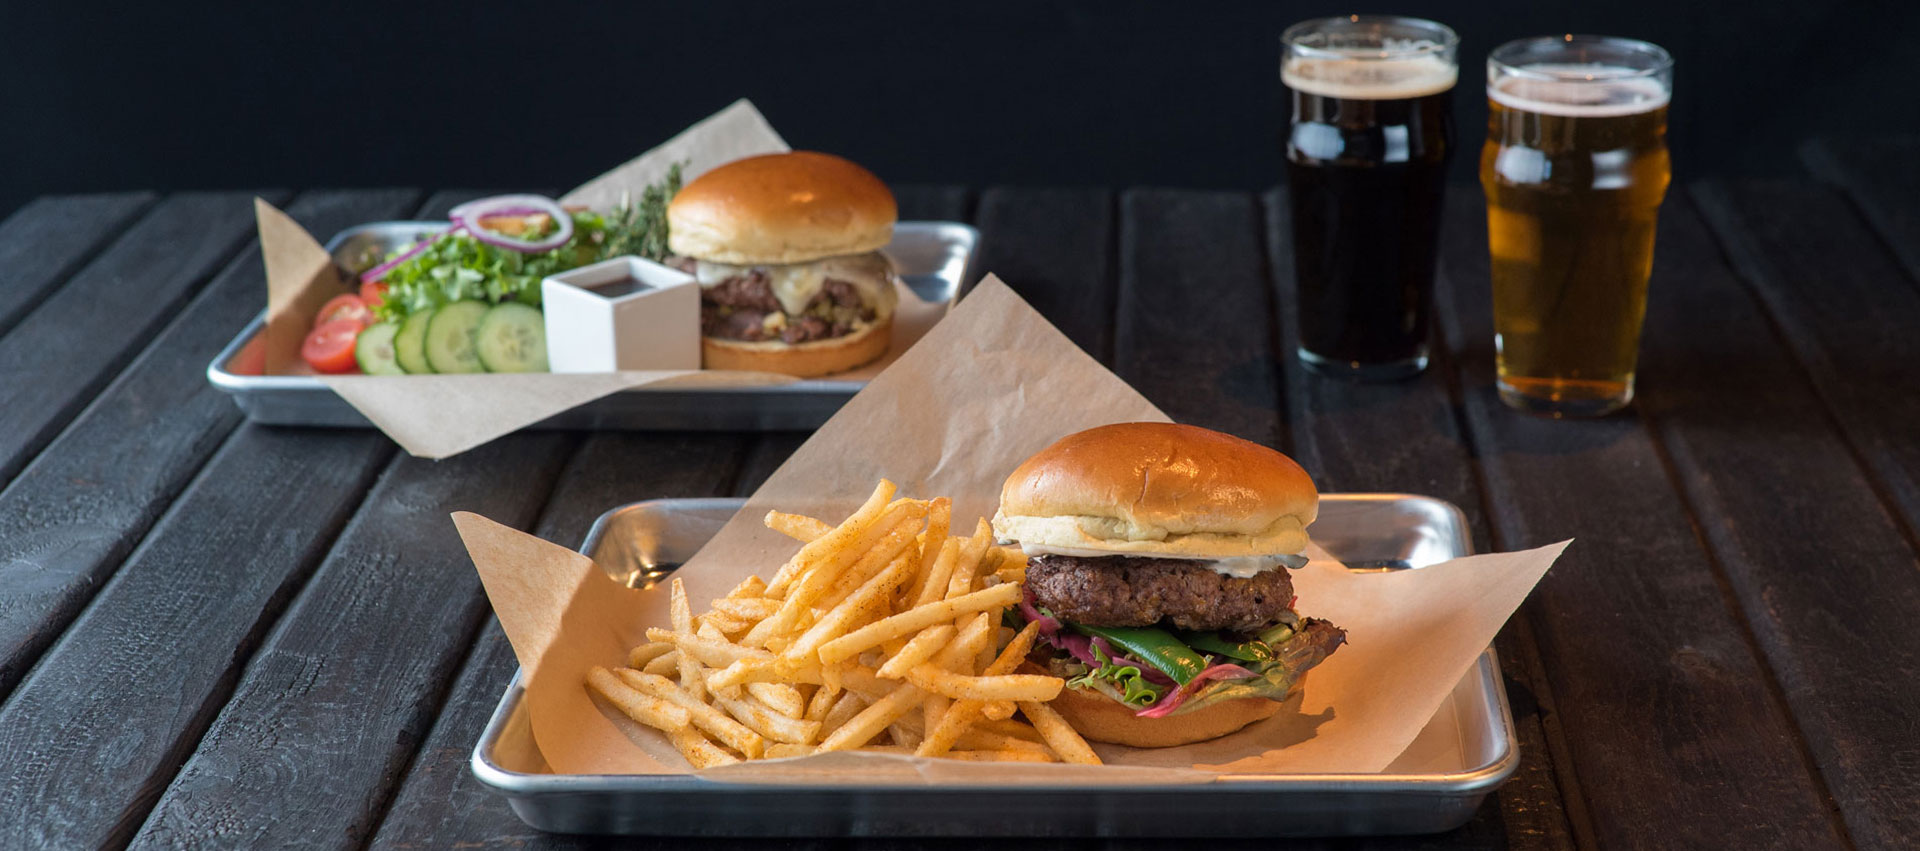 Charred - Chile Relleno Wagyu Burger + Hot Italian Beef Burger